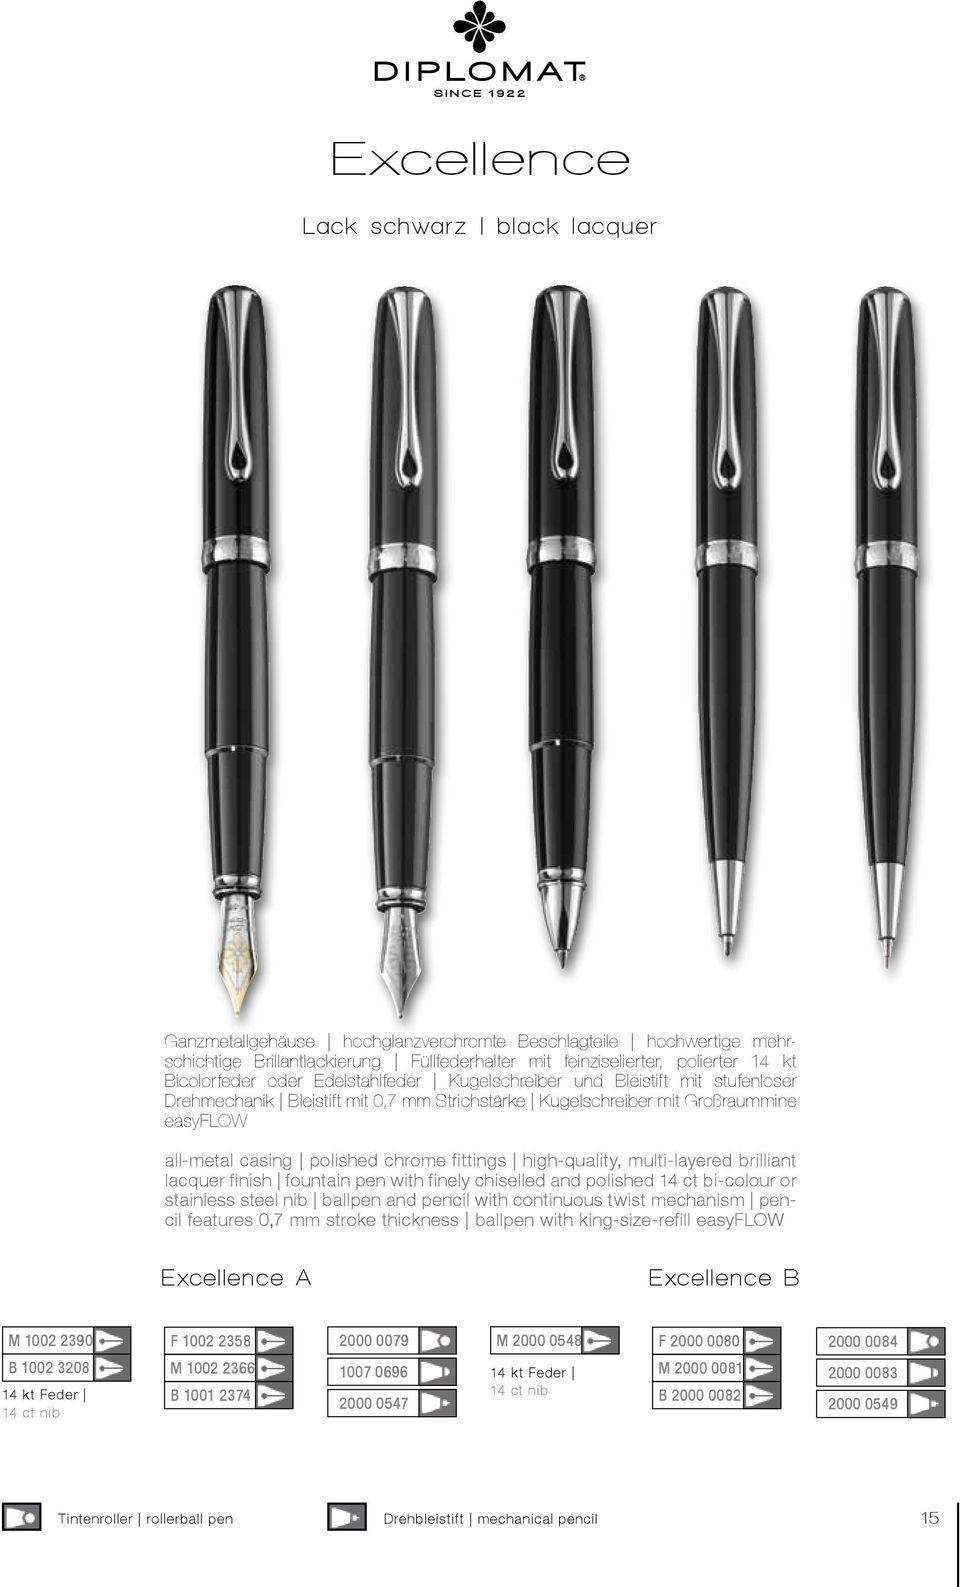 fittings high-quality, multi-layered brilliant lacquer finish fountain pen with finely chiselled and polished 14 ct bi-colour or stainless steel nib ballpen and pencil with continuous twist mechanism